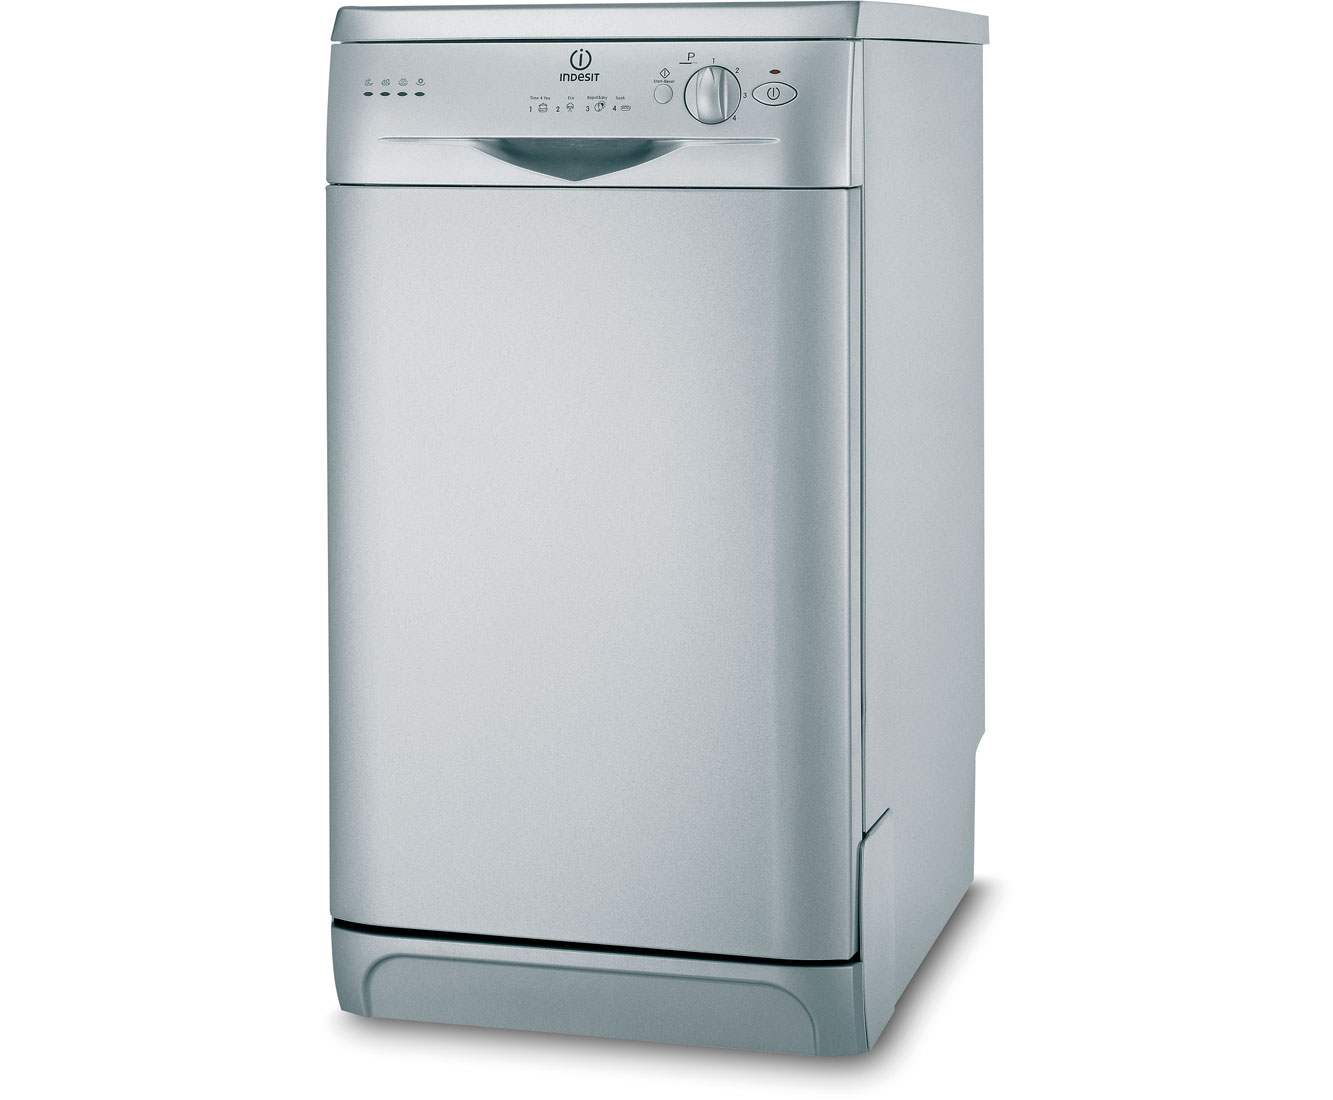 Indesit Start IDS105S Slimline Dishwasher - Silver